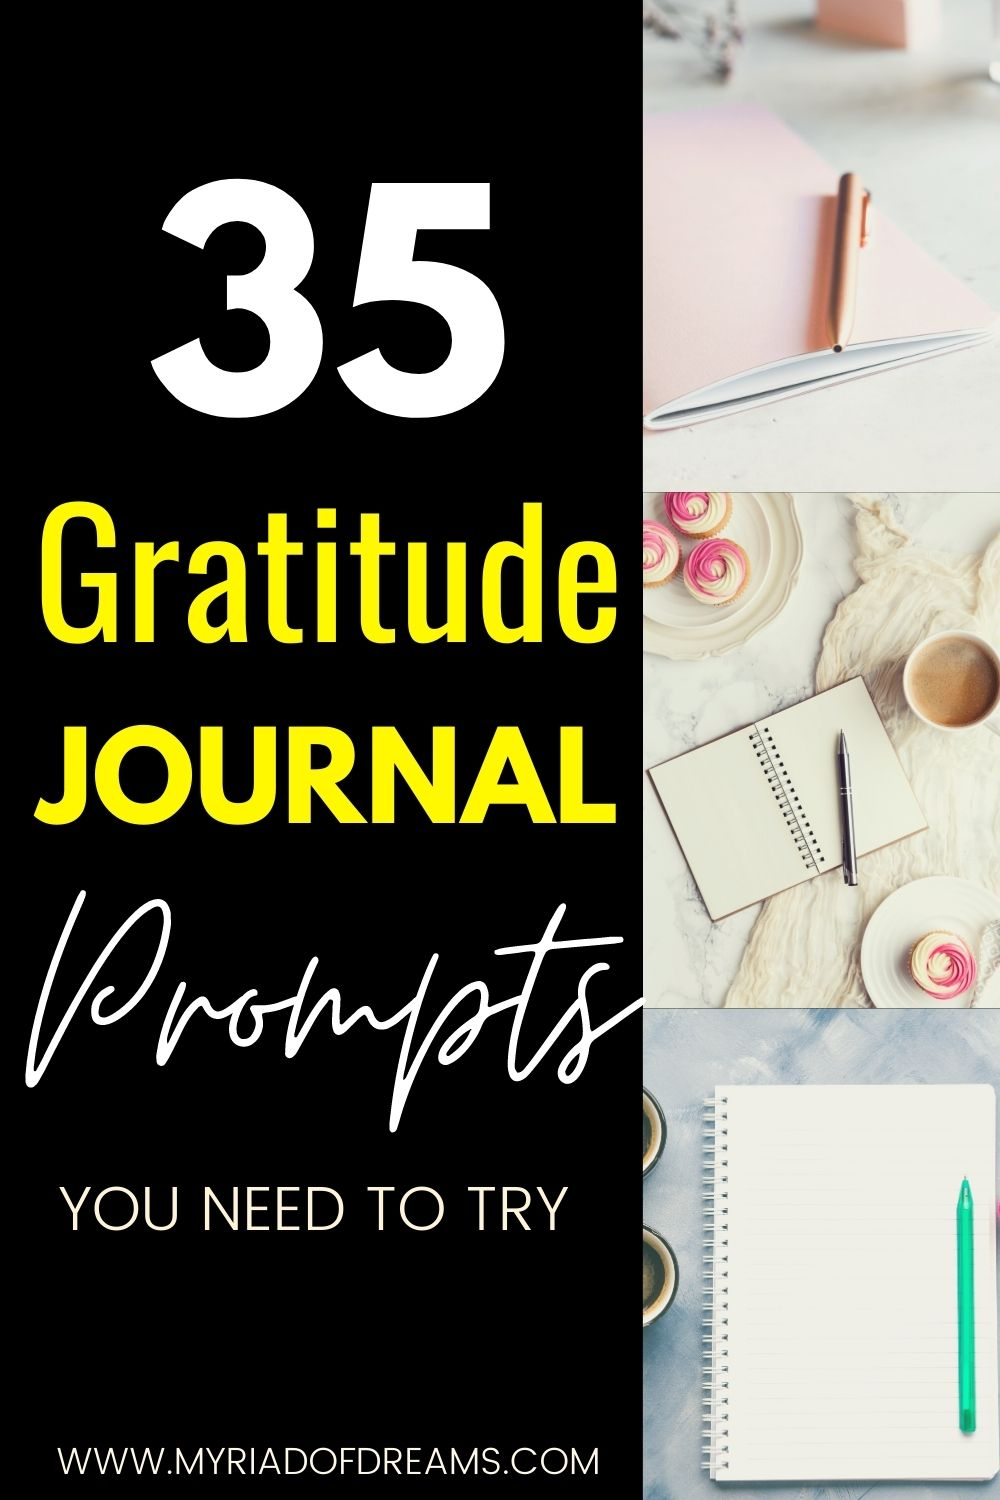 Daily gratitude journal prompts to create more thankfulness in life. Learn the benefits of gratitude journaling and live your best life.